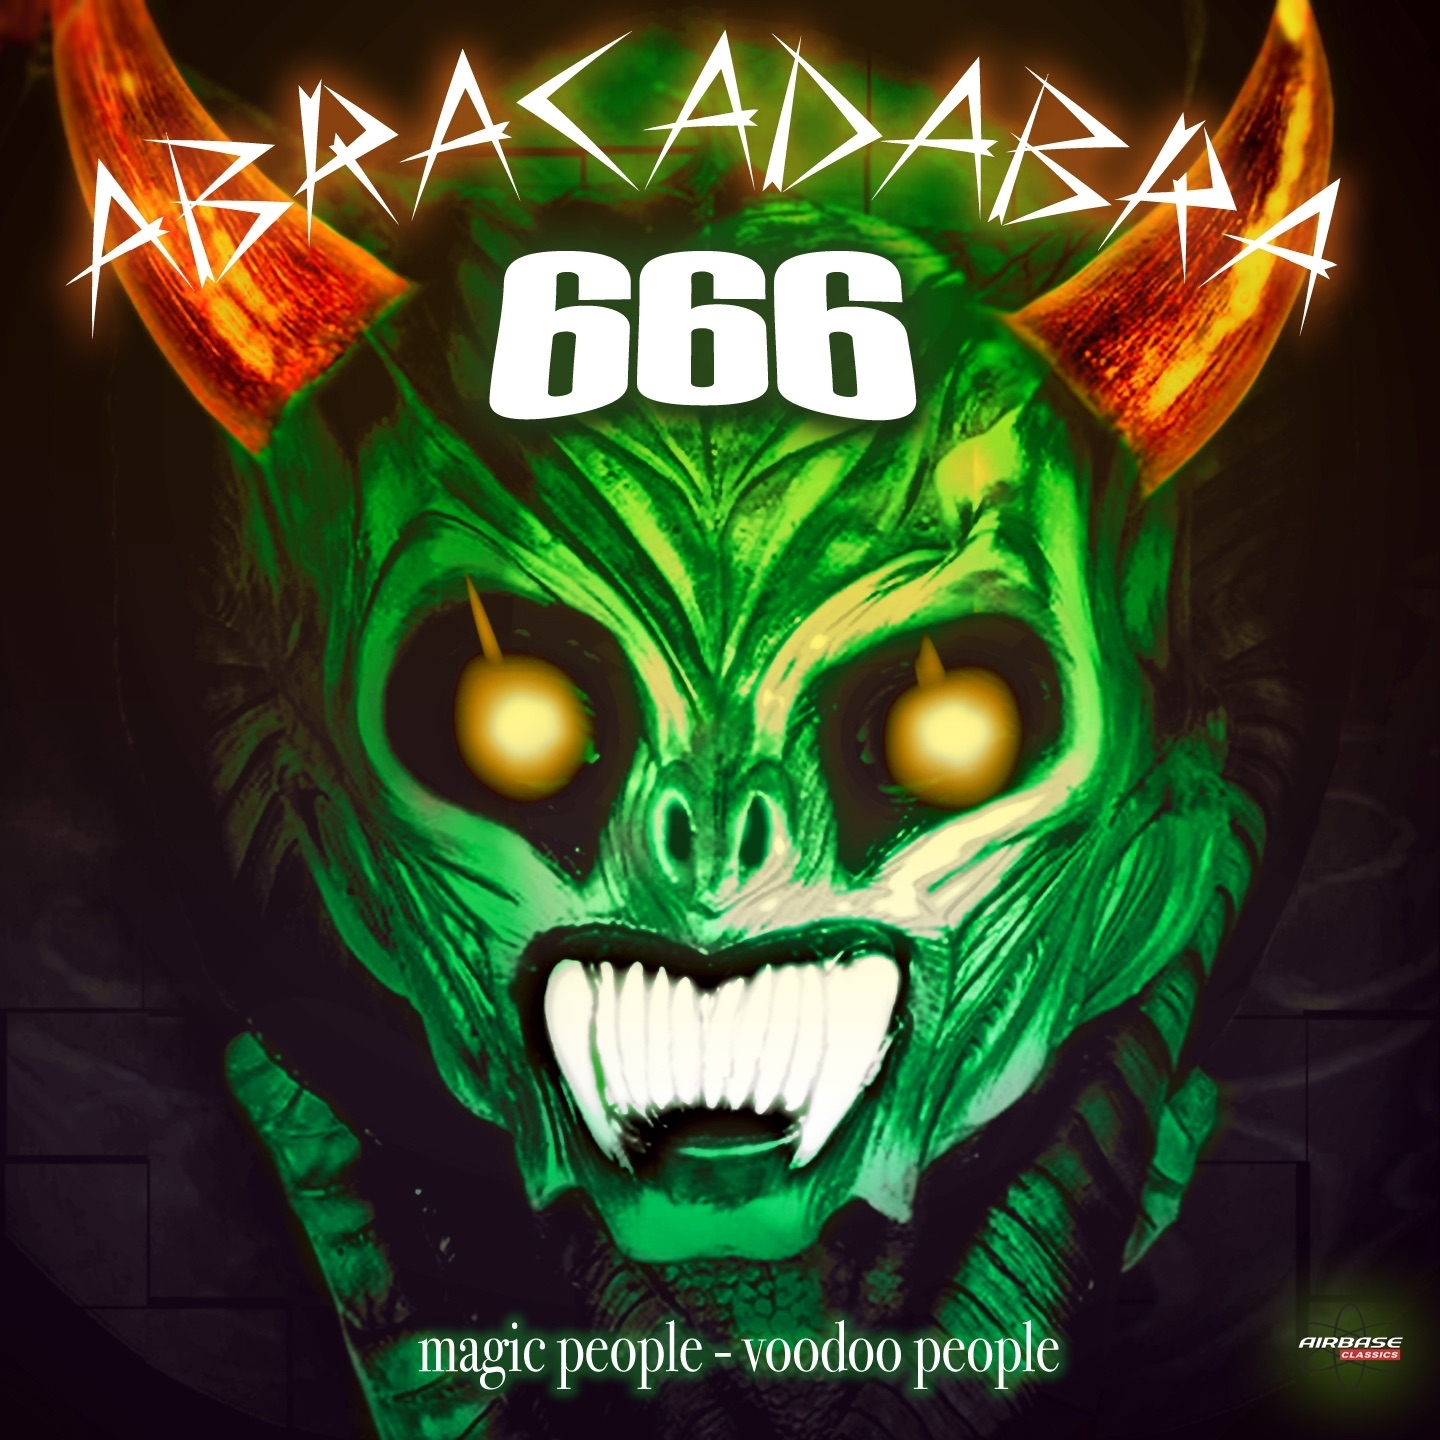 Abracadabra (Magic People - Voodoo People - Special Maxi Edition) - EP